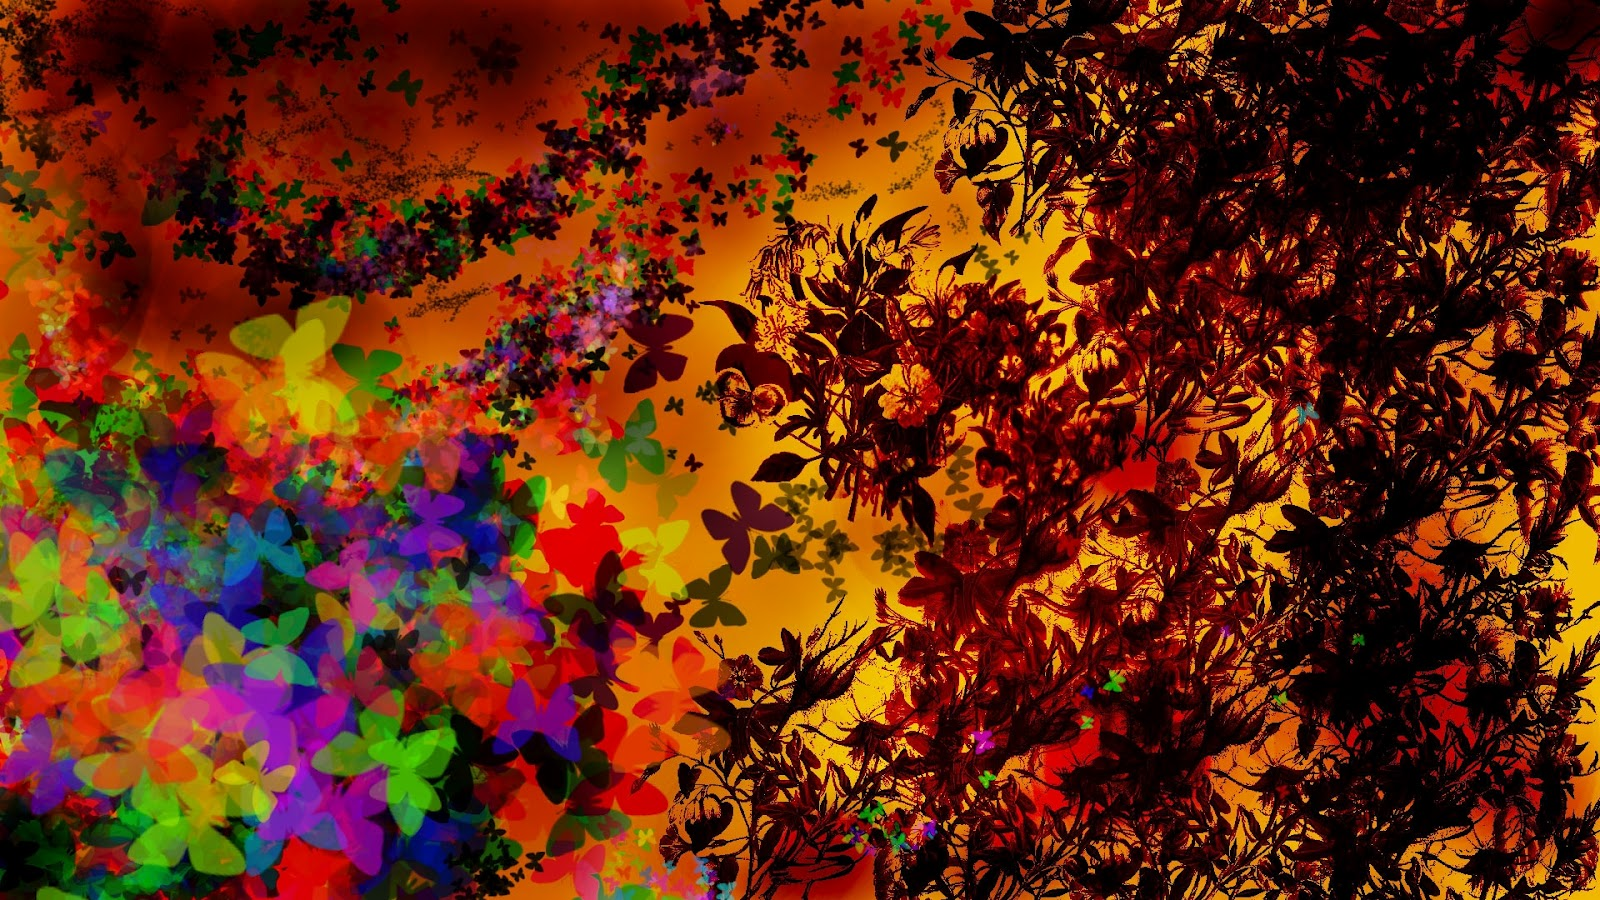 Hd Abstract Wallpapers 1080p: Wallpaper And Image: 30 Colorful Abstract Wallpapers Full